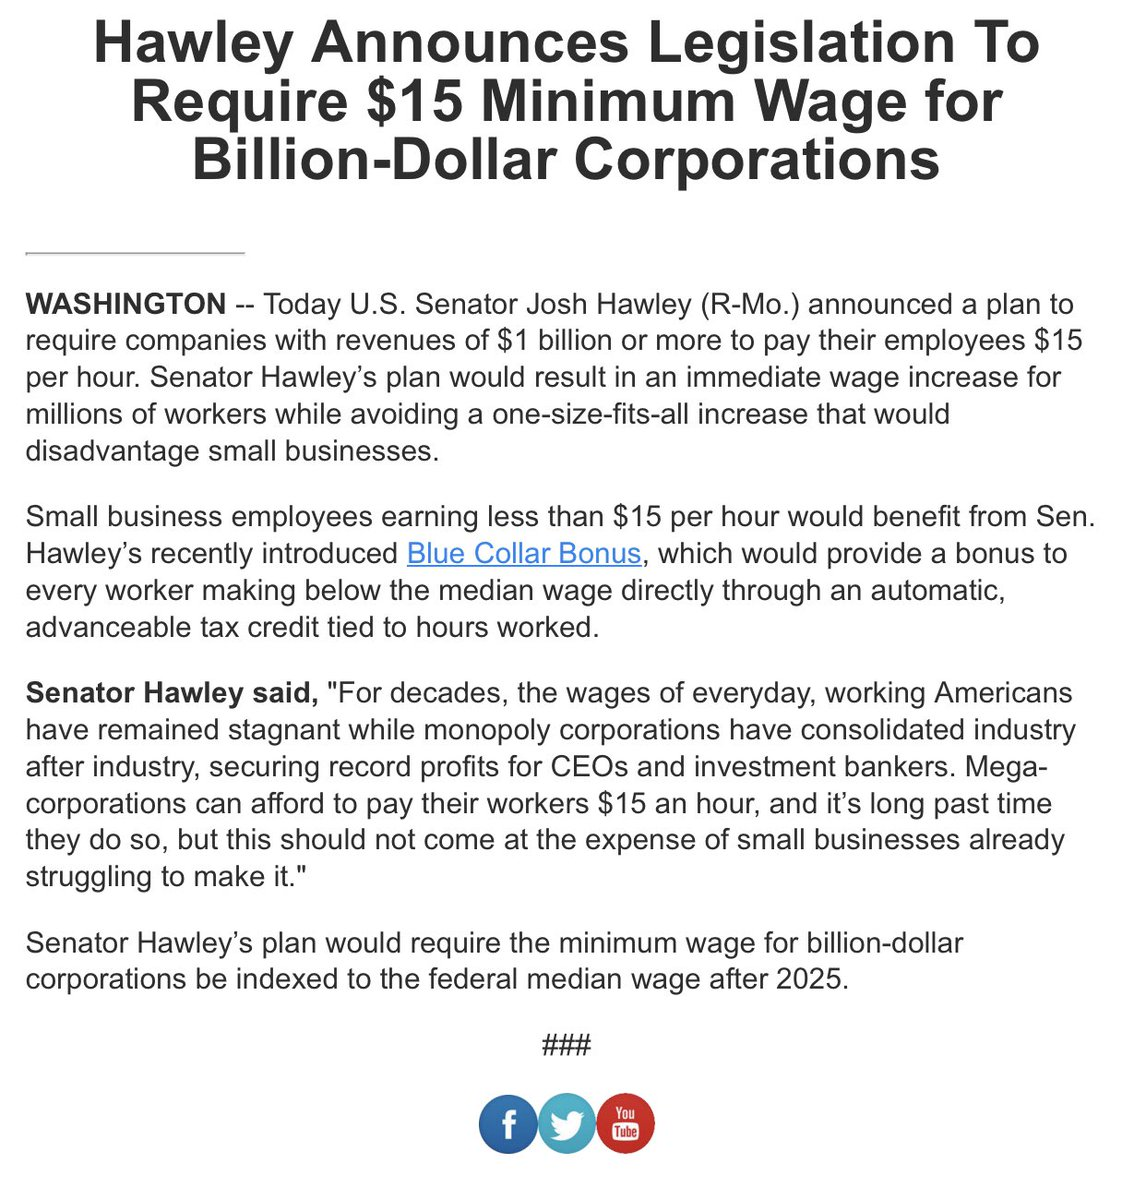 .@HawleyMO Announces Legislation To Require $15 Minimum Wage for Billion-Dollar Corporations